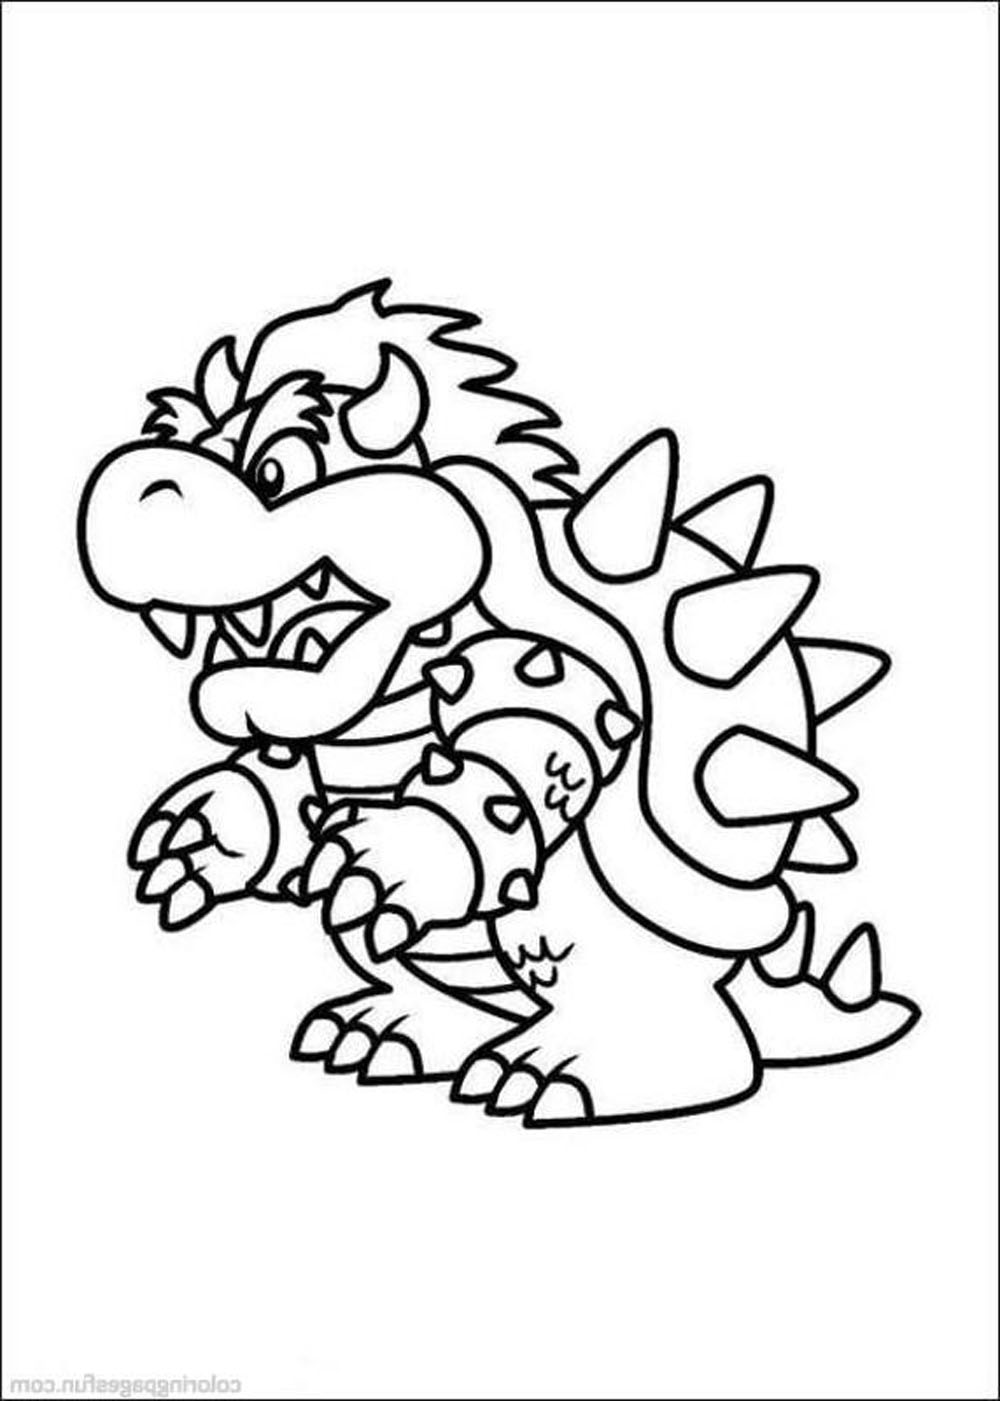 mario coloring book pages mario coloring pages themes best apps for kids book coloring pages mario